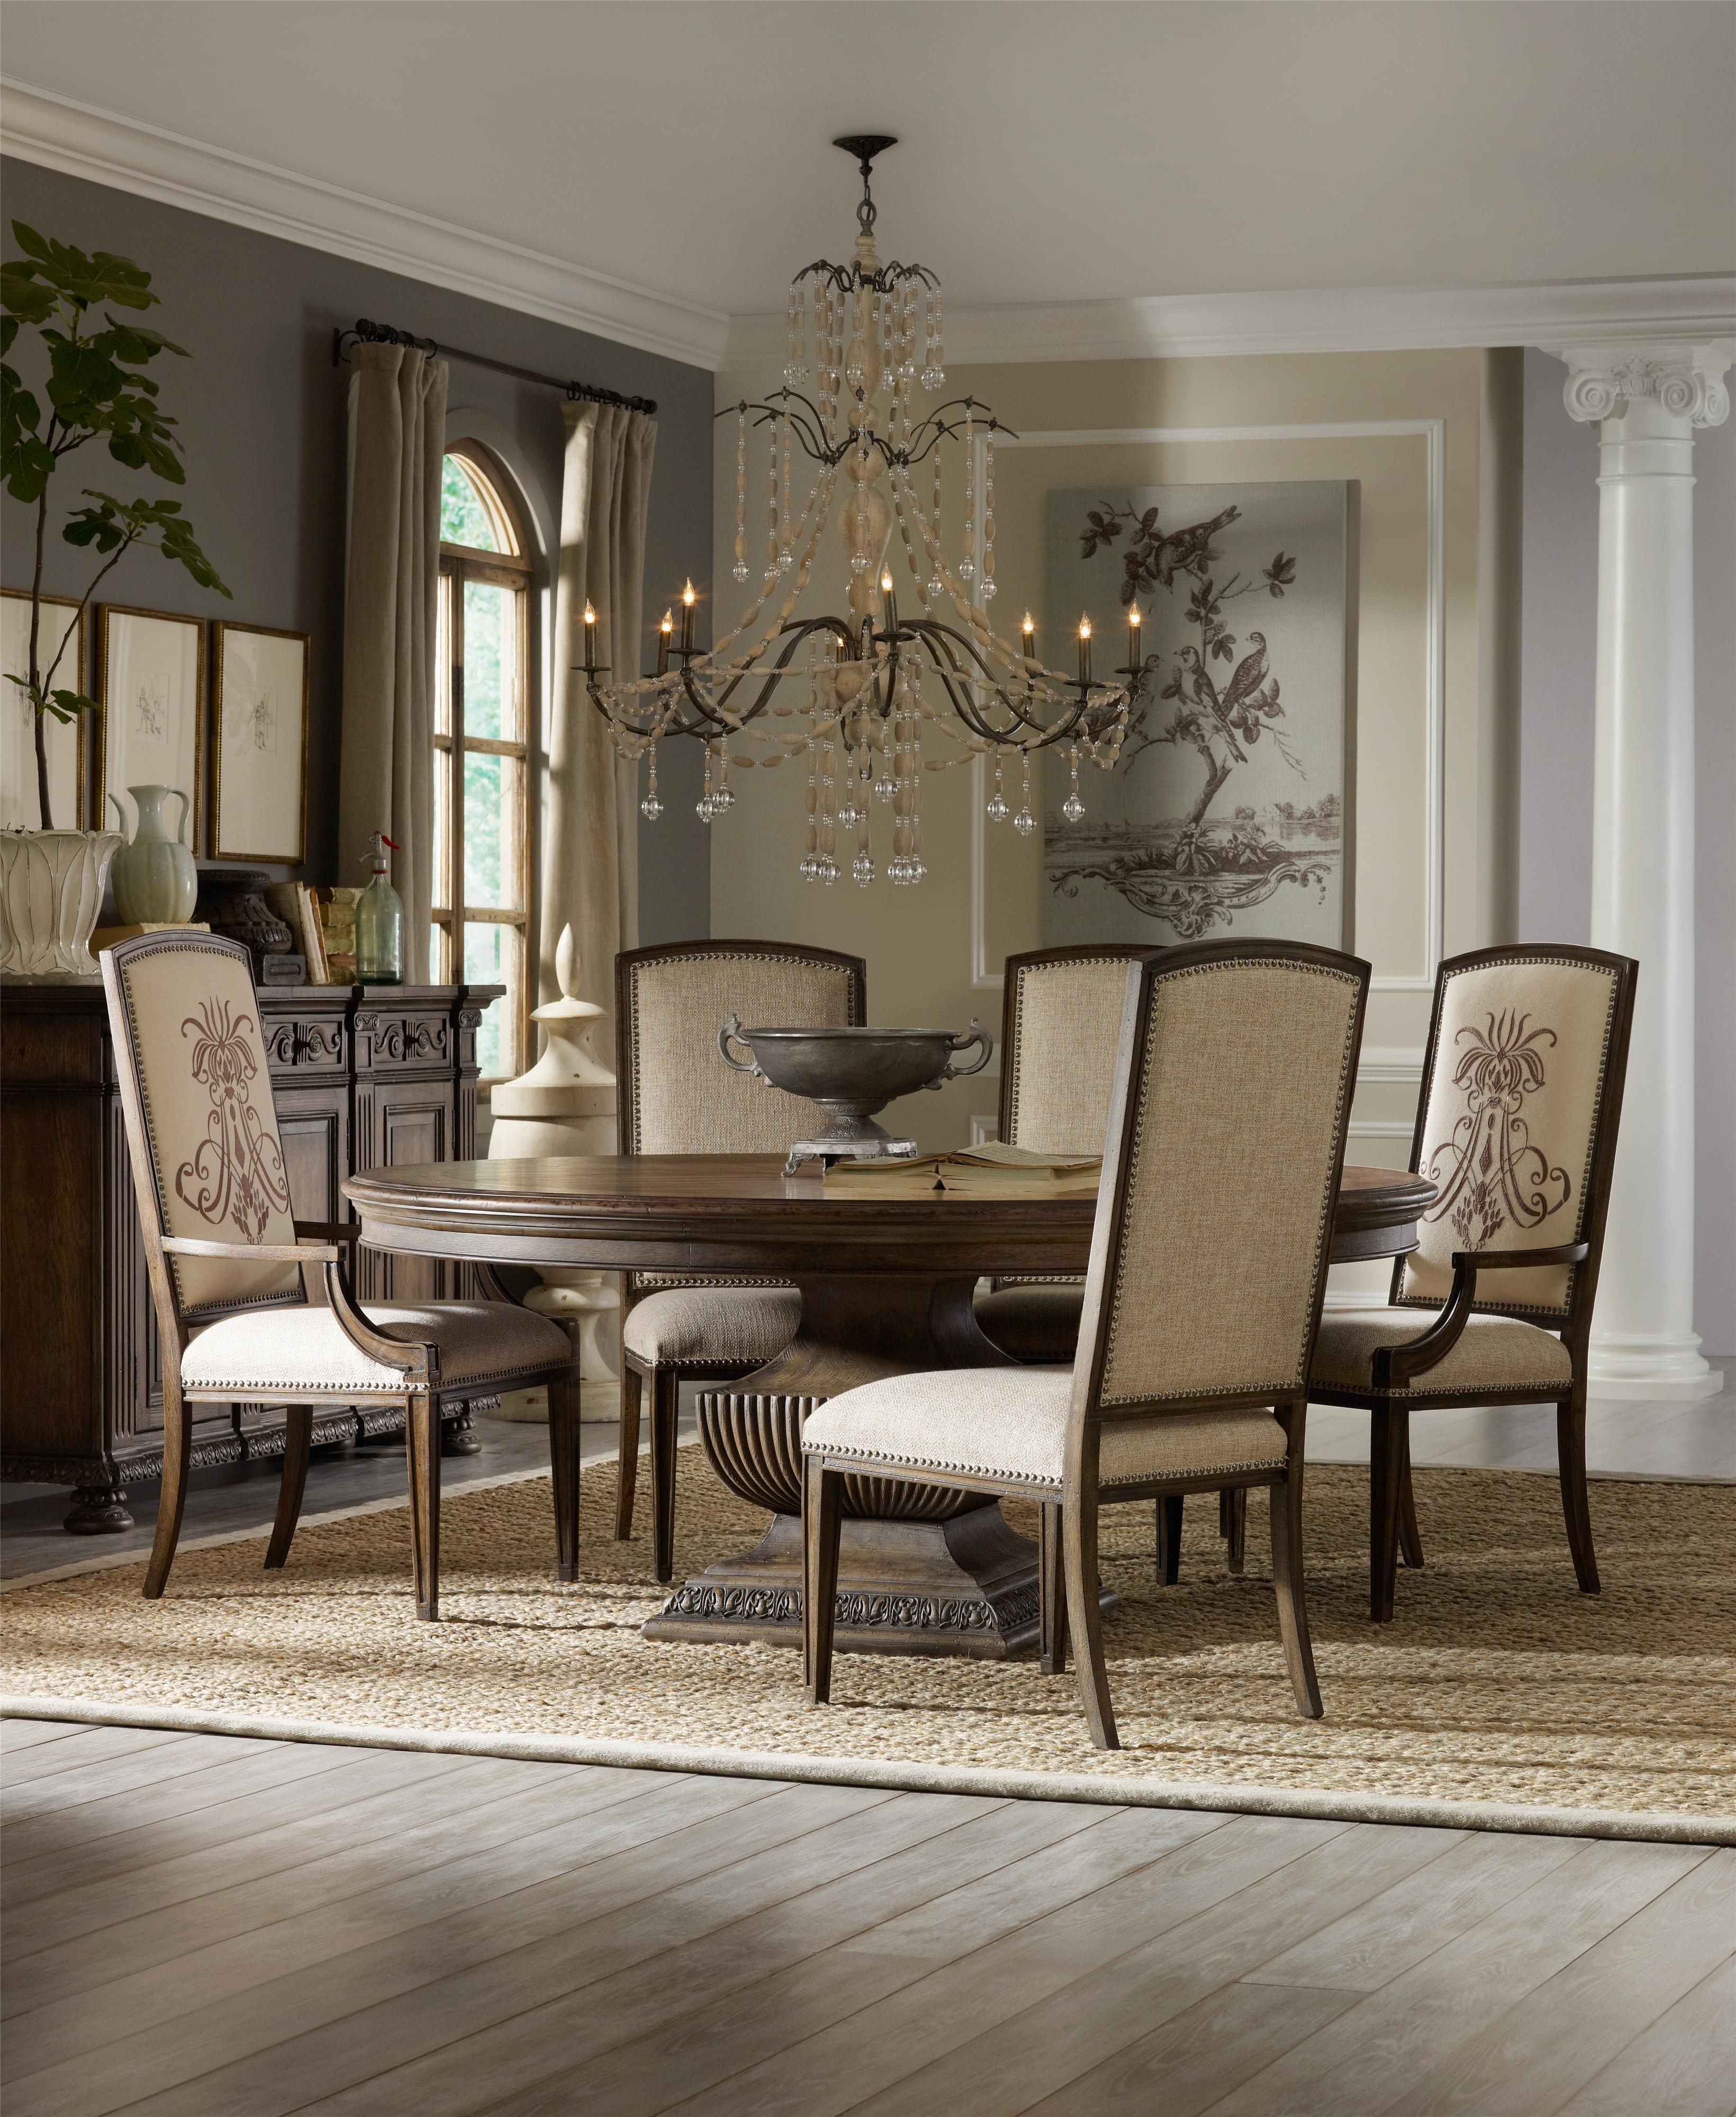 Fullsize Of 72 Inch Round Dining Table